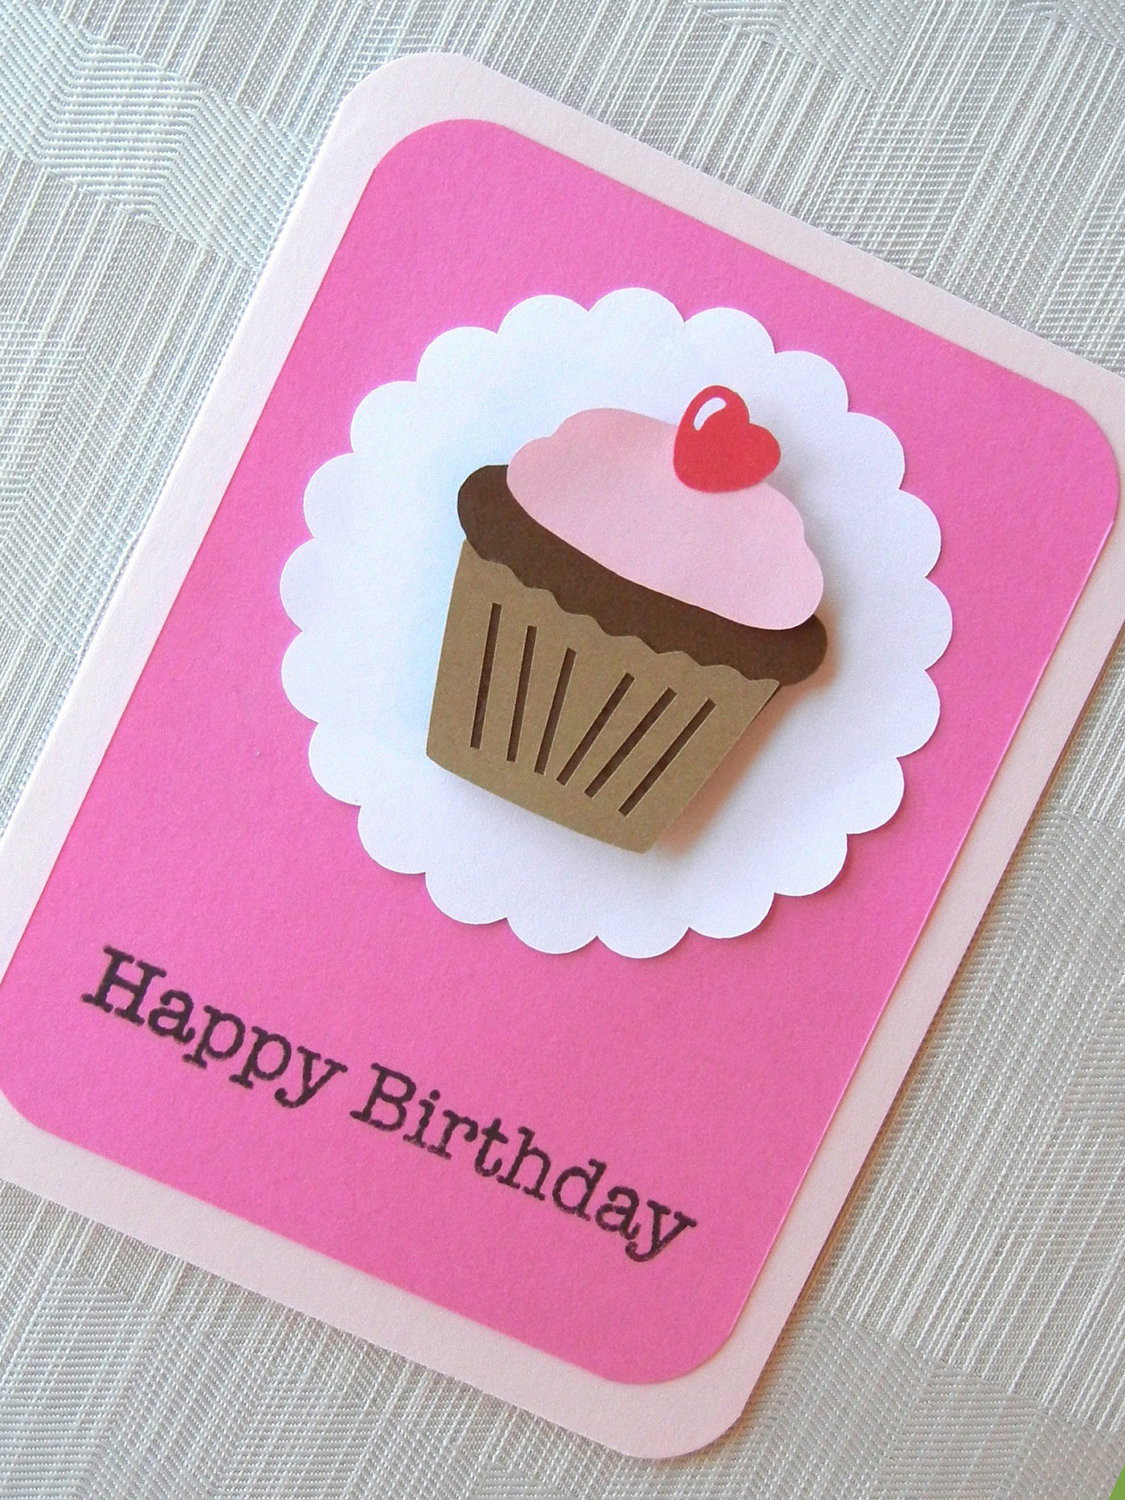 Diy Birthday Cards Ideas 34 Truly Amazing Diy Birthday Cards Thats Over Your Head Tons Of